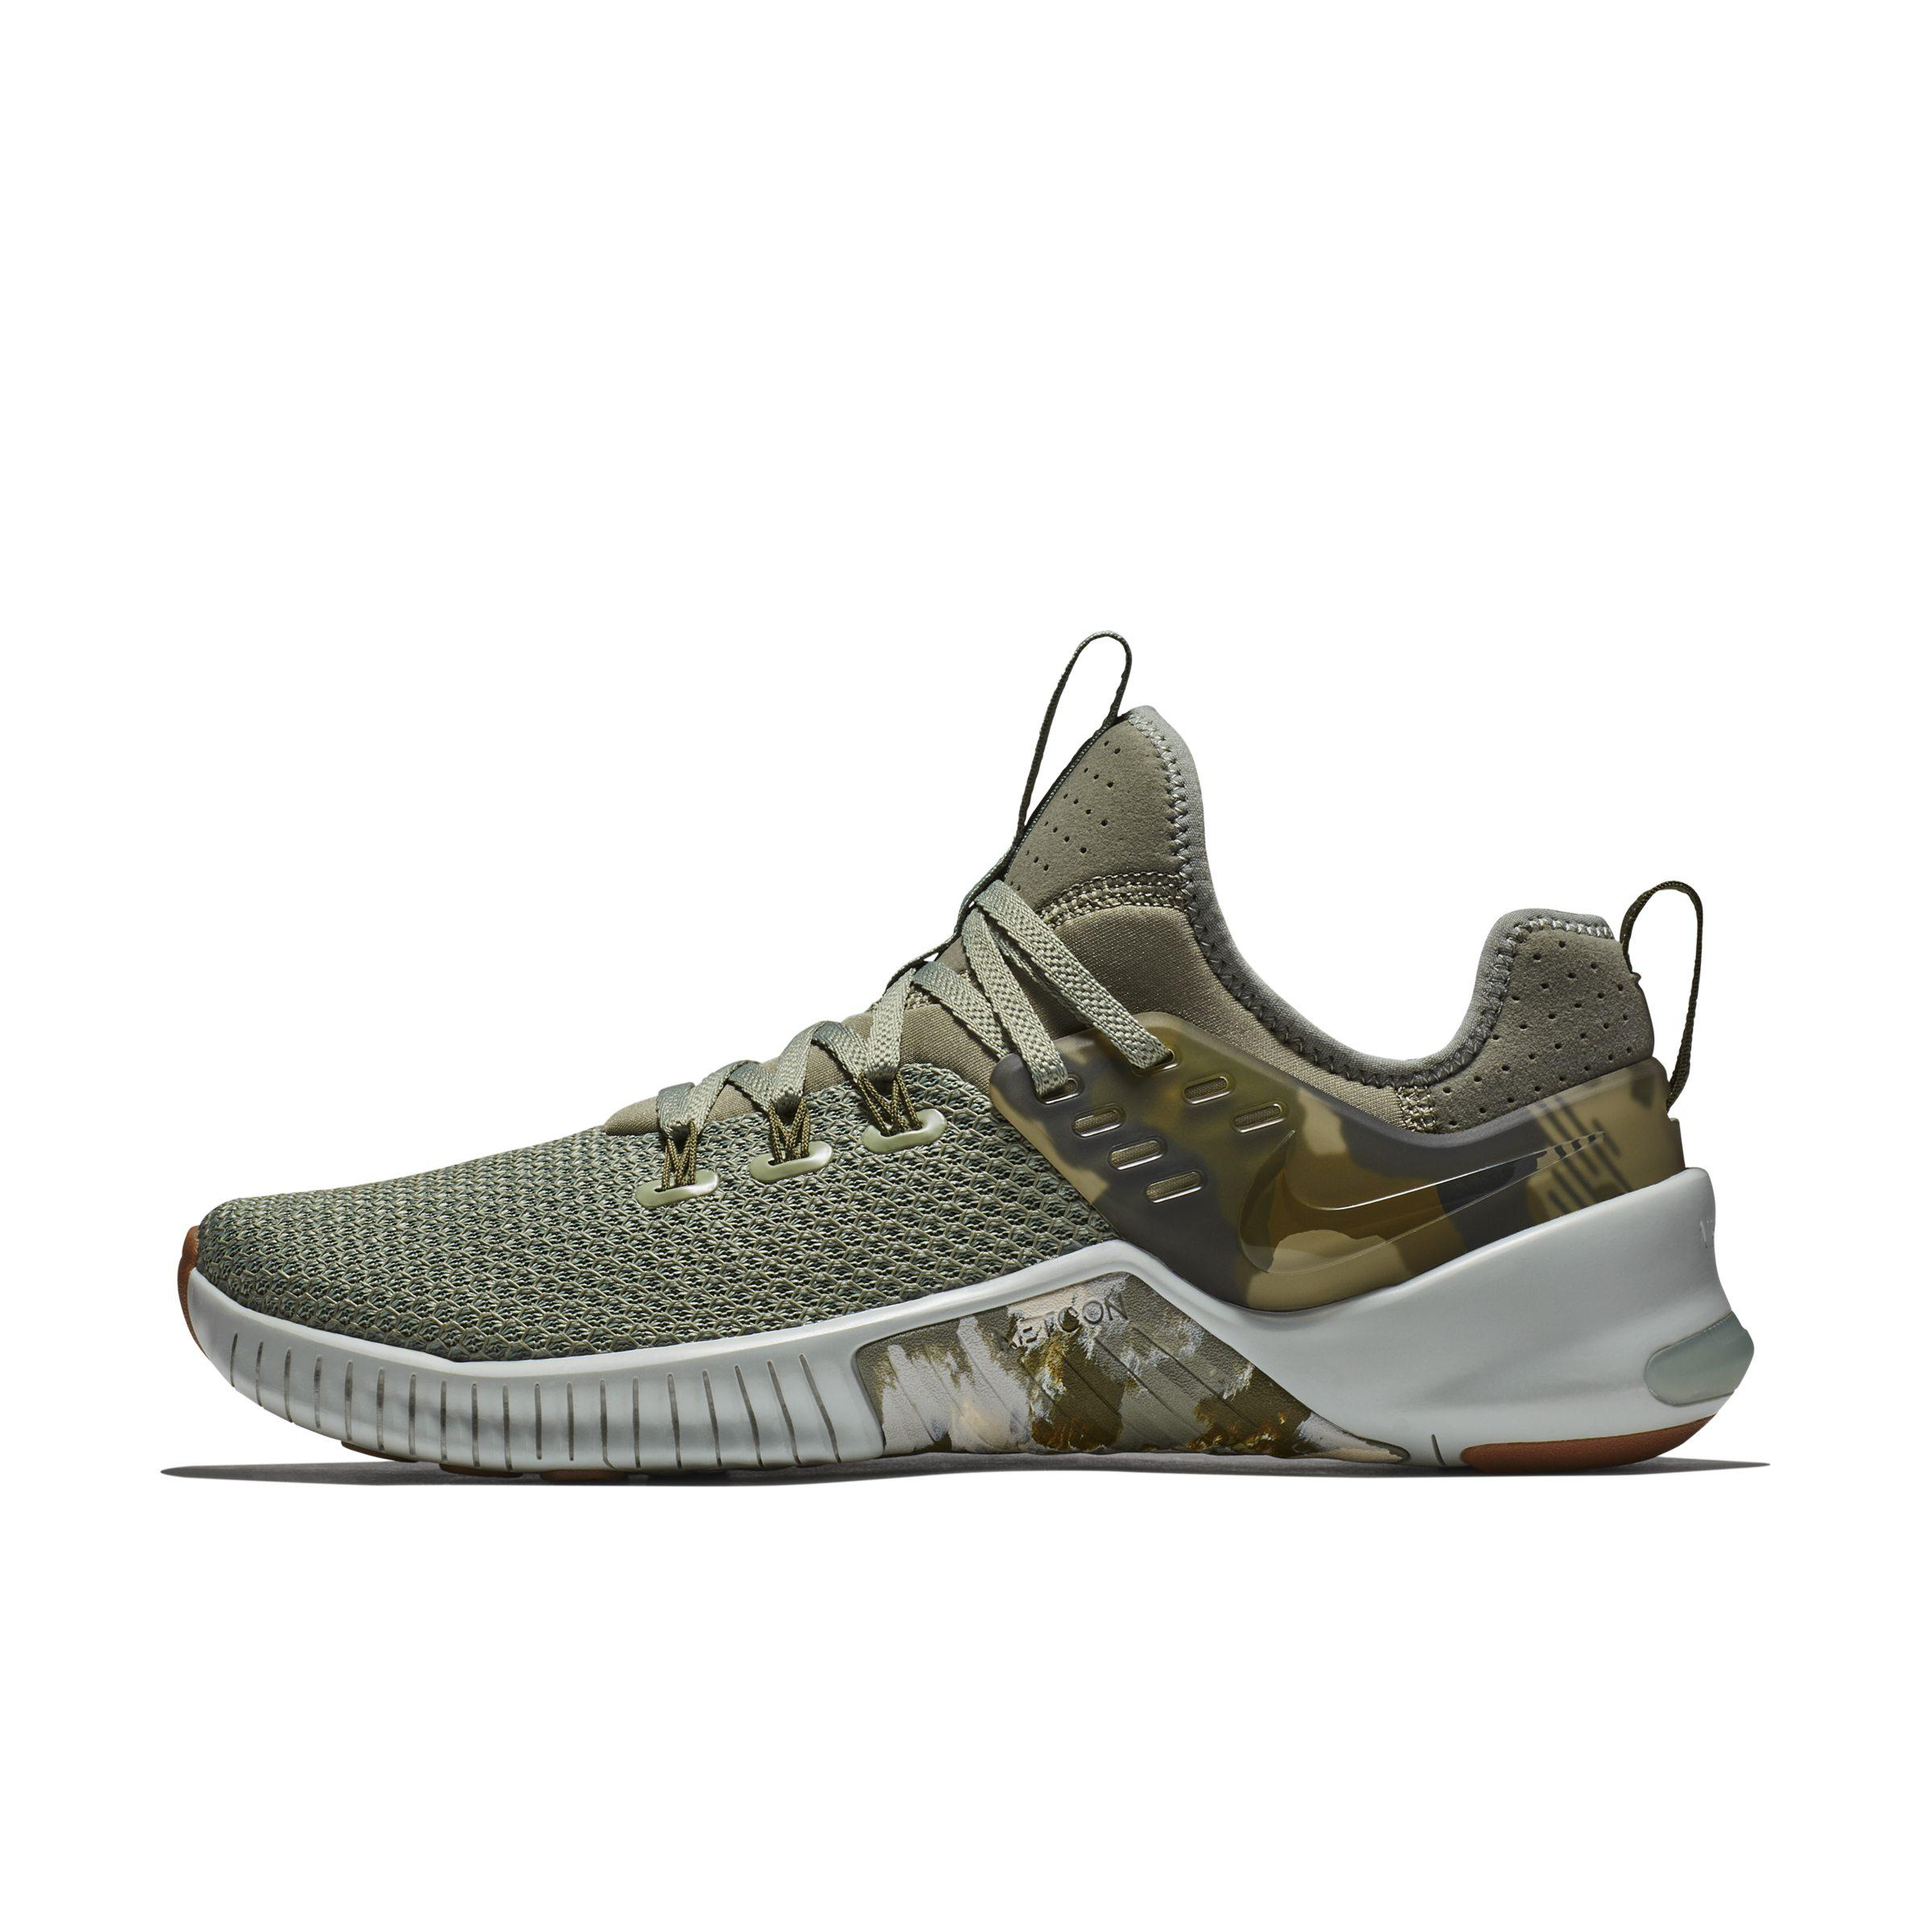 04afd93878e9 Nike Free X Metcon Gym cross Training Shoe in Green for Men - Lyst